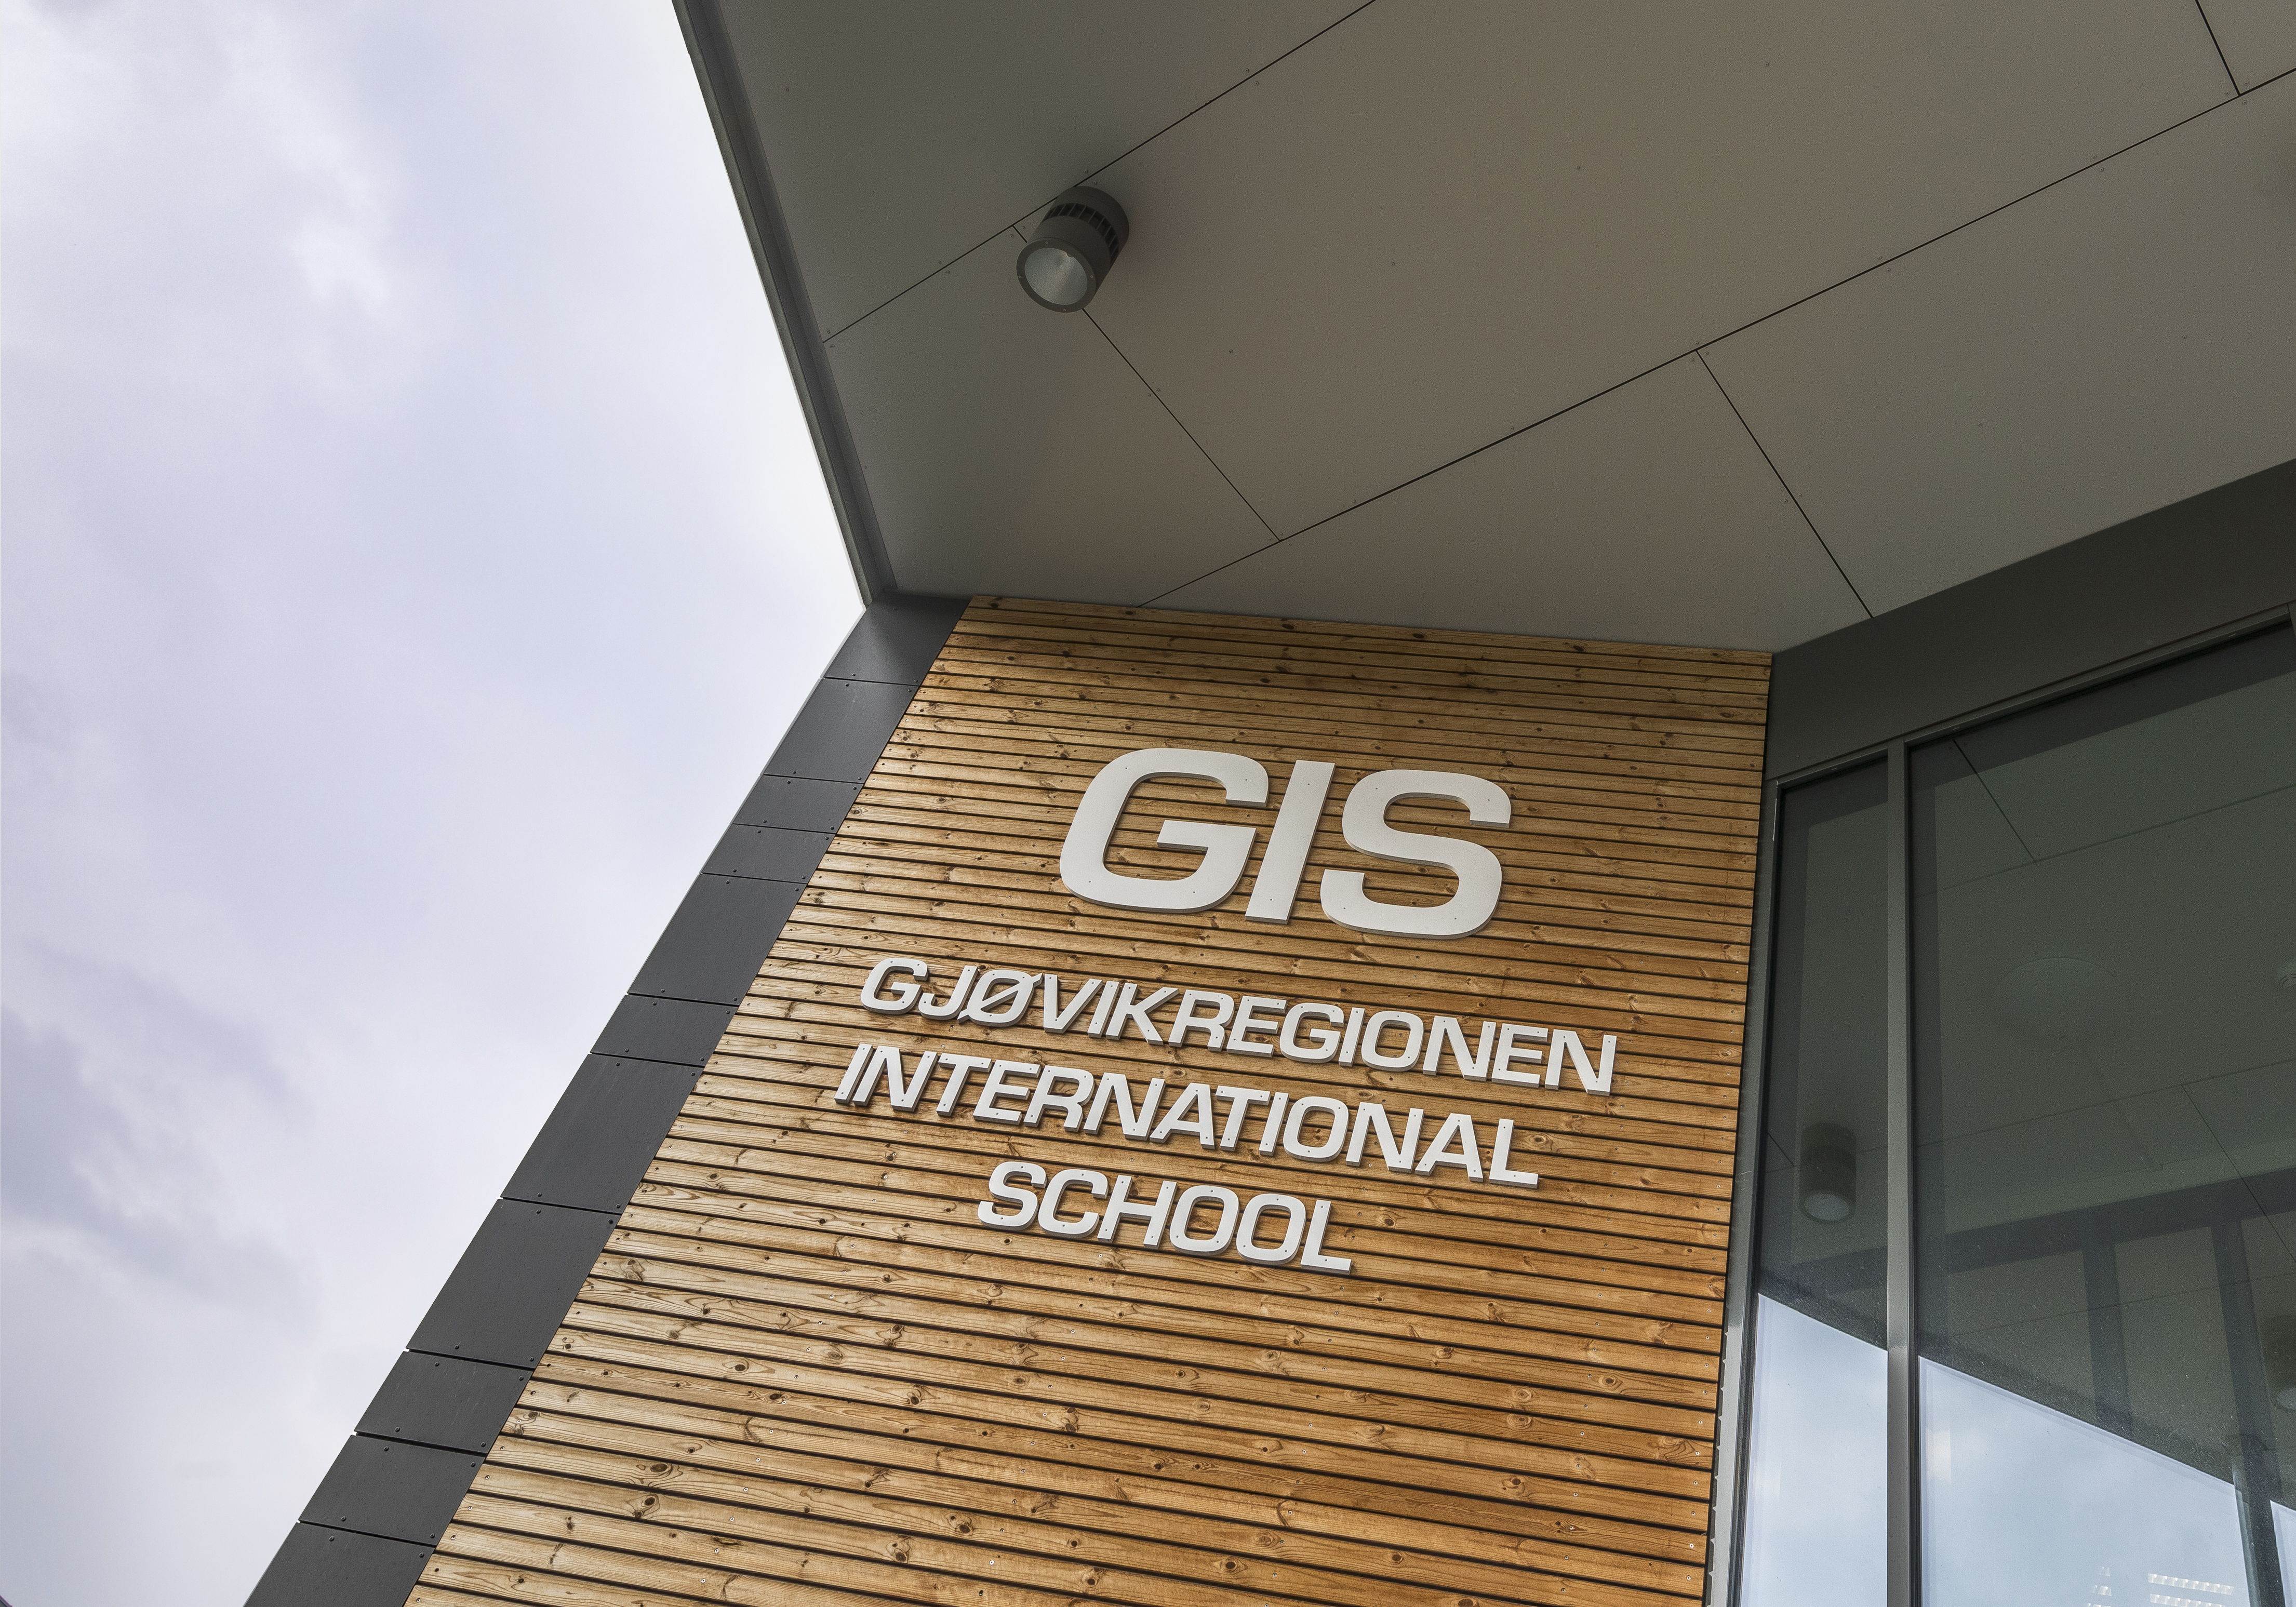 Gjøvikregionen International School